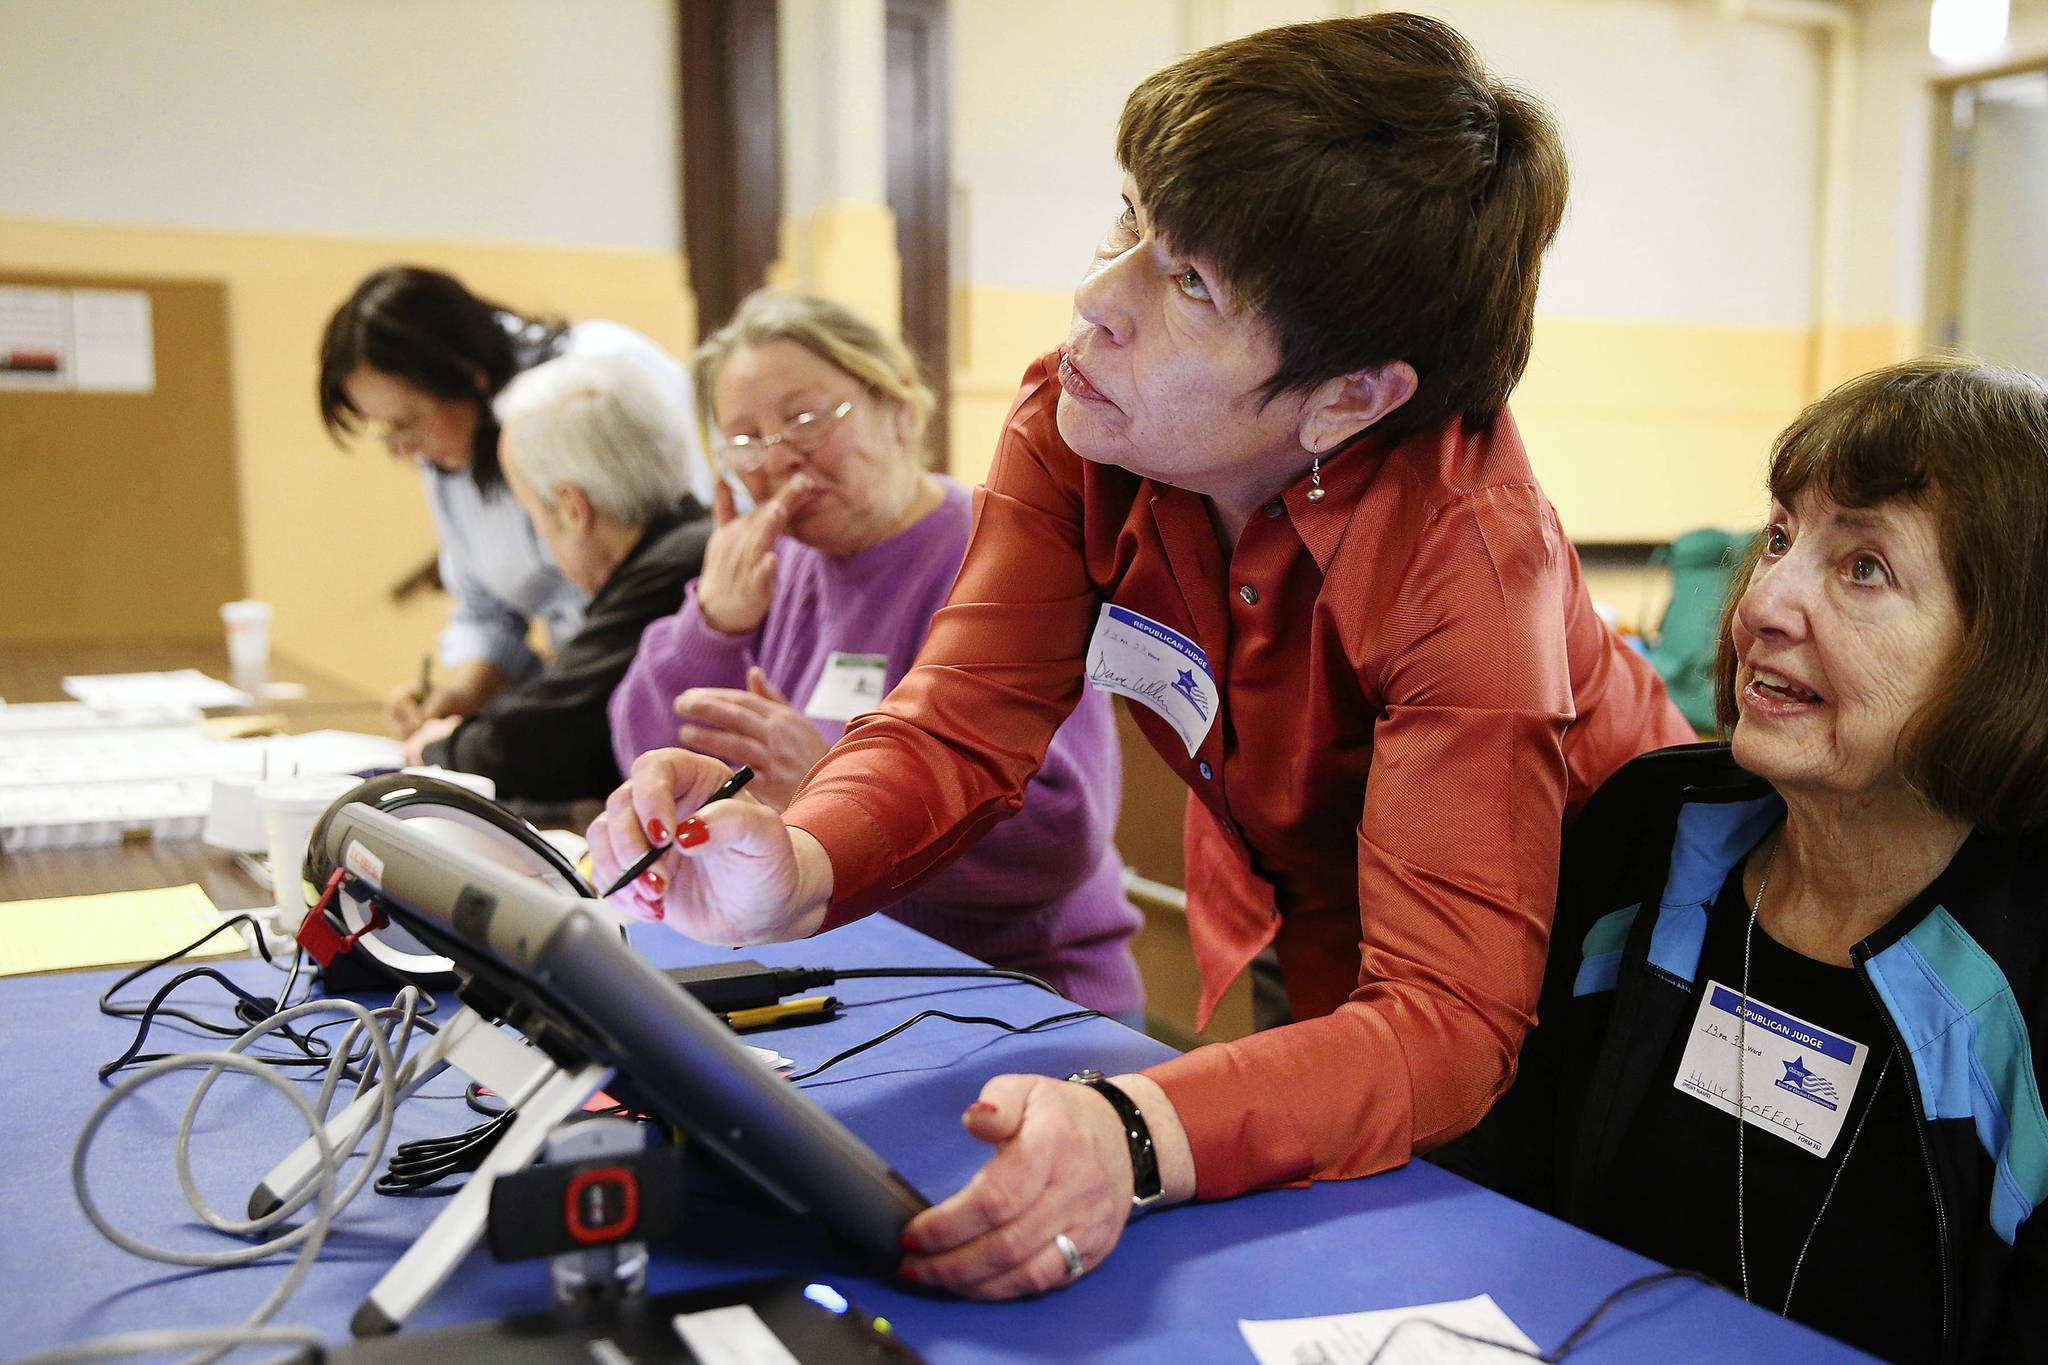 Election judge Diane Wilber, second from right, checks an electronic poll book for a voter shortly after the polls opened on Tuesday at Carlos Fuentes charter school in the Avondale neighborhood of Chicago. At right is election judge Holly Coffey.